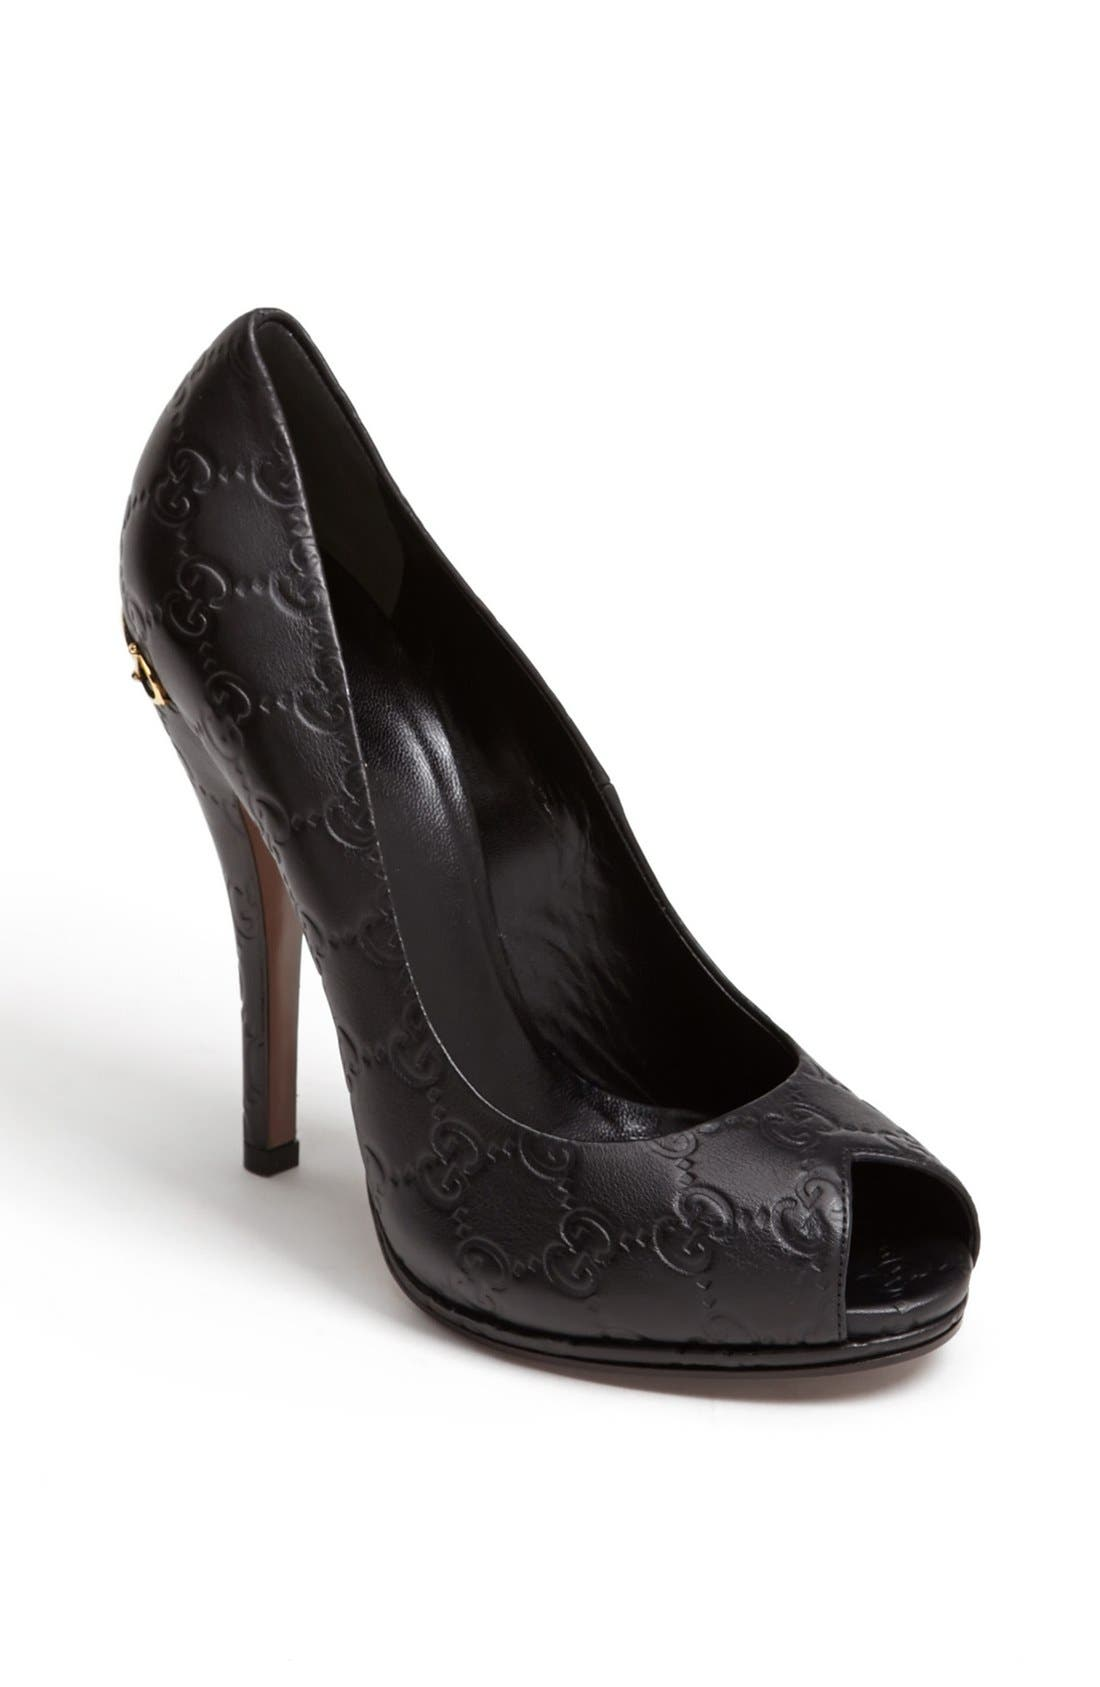 Alternate Image 1 Selected - Gucci 'Elizabeth' Peep Toe Pump